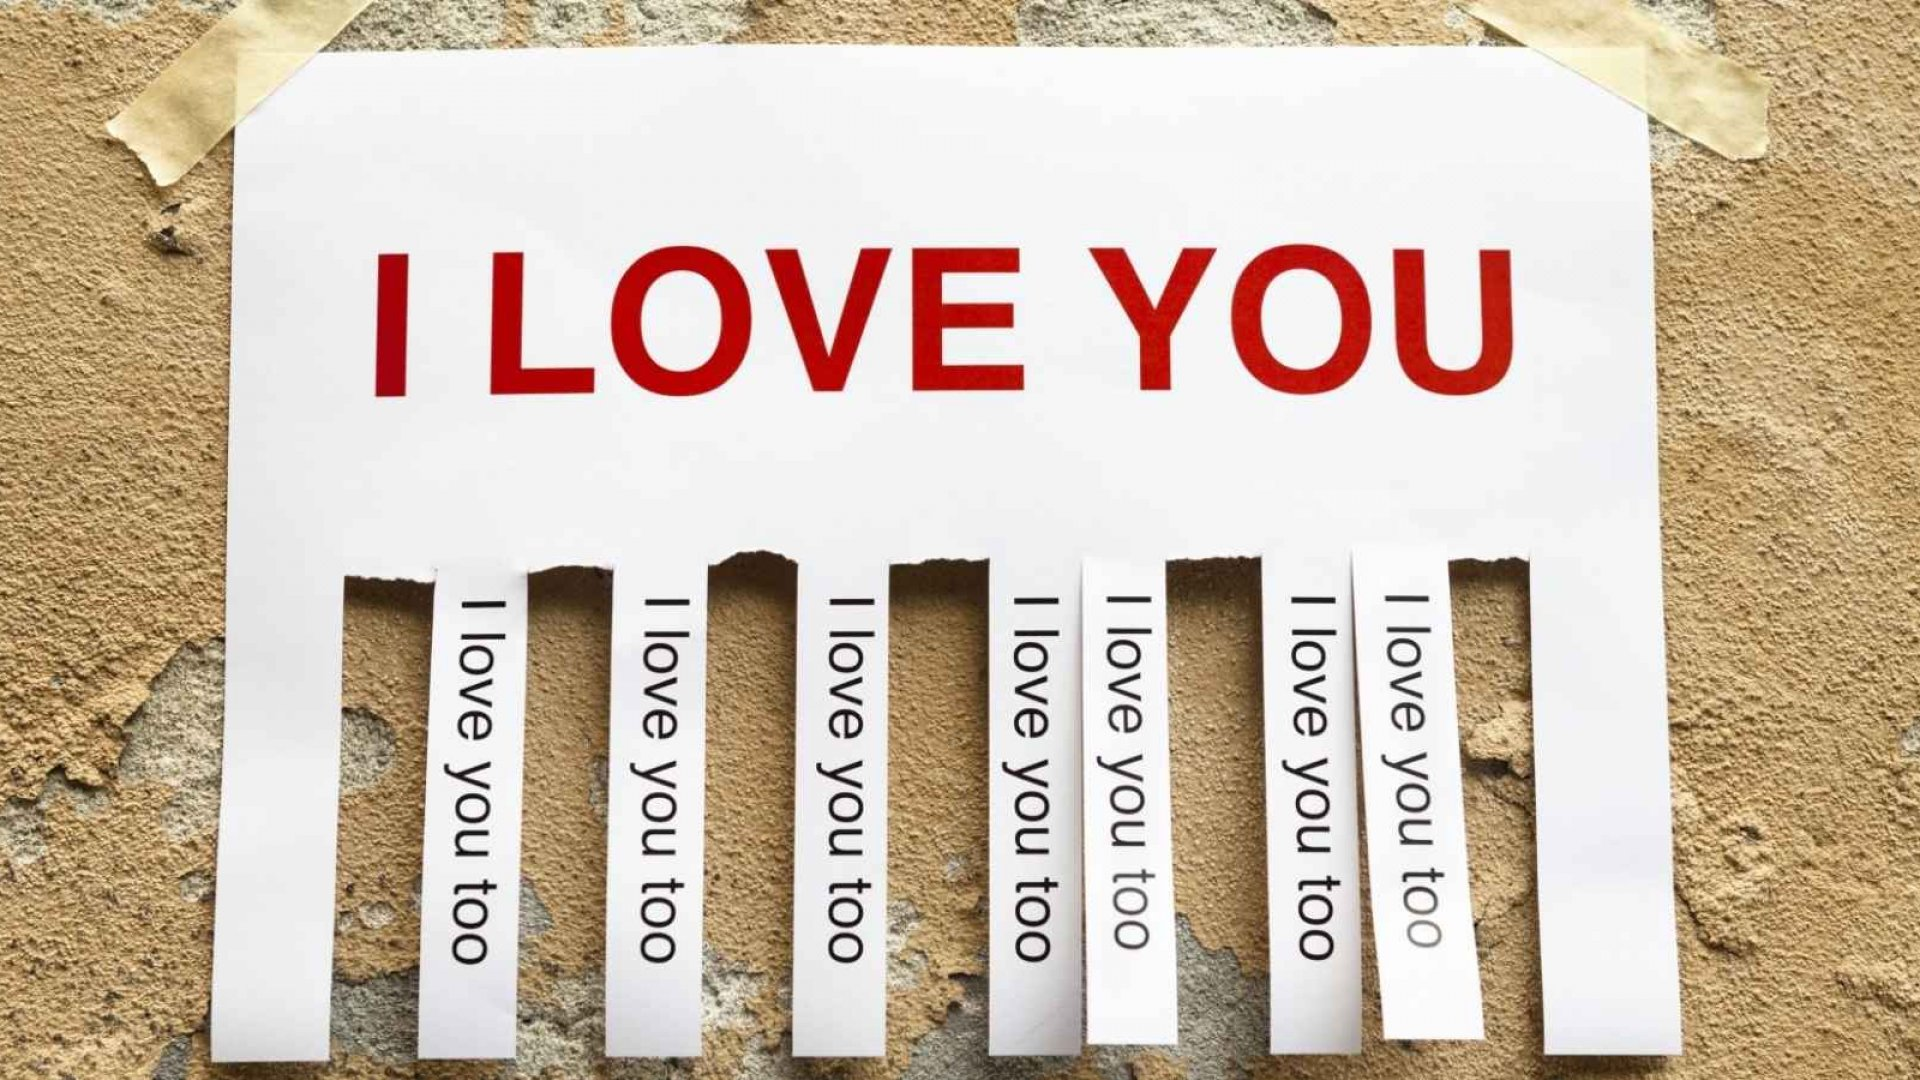 100 Ways You Can Express Love as a Leader